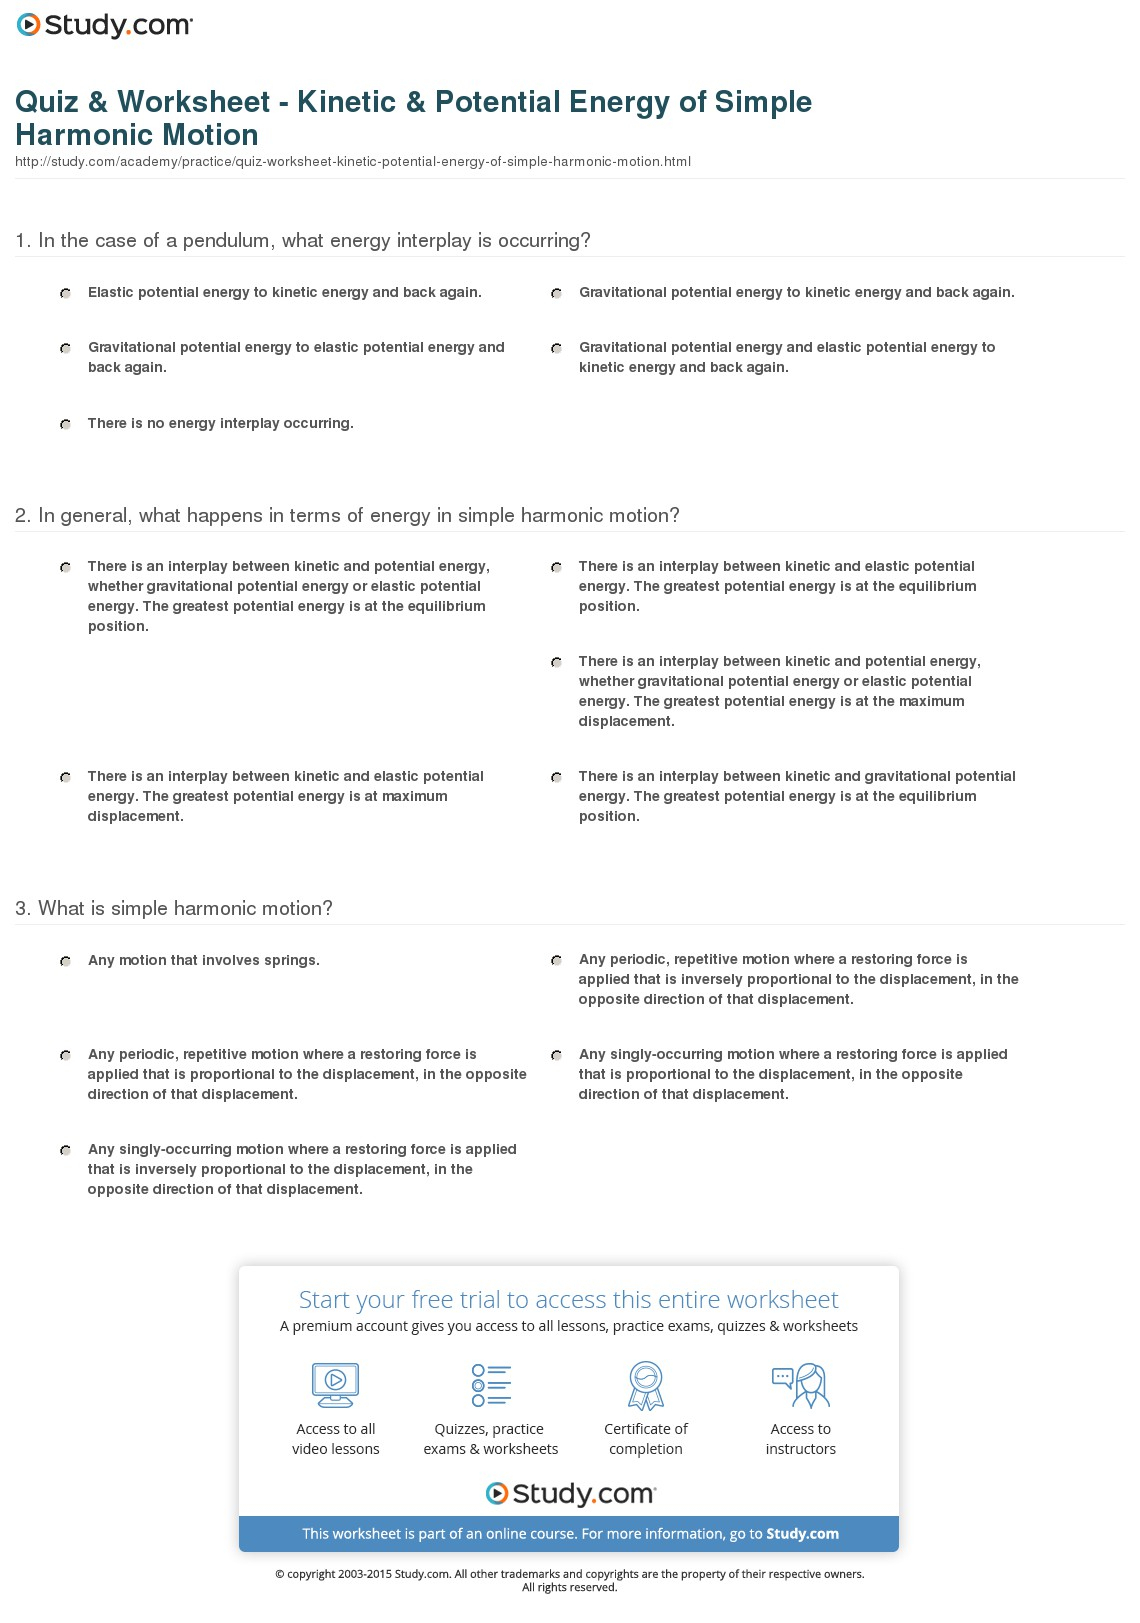 Quiz Worksheet Kinetic Potential Energy Of Simple Harmonic